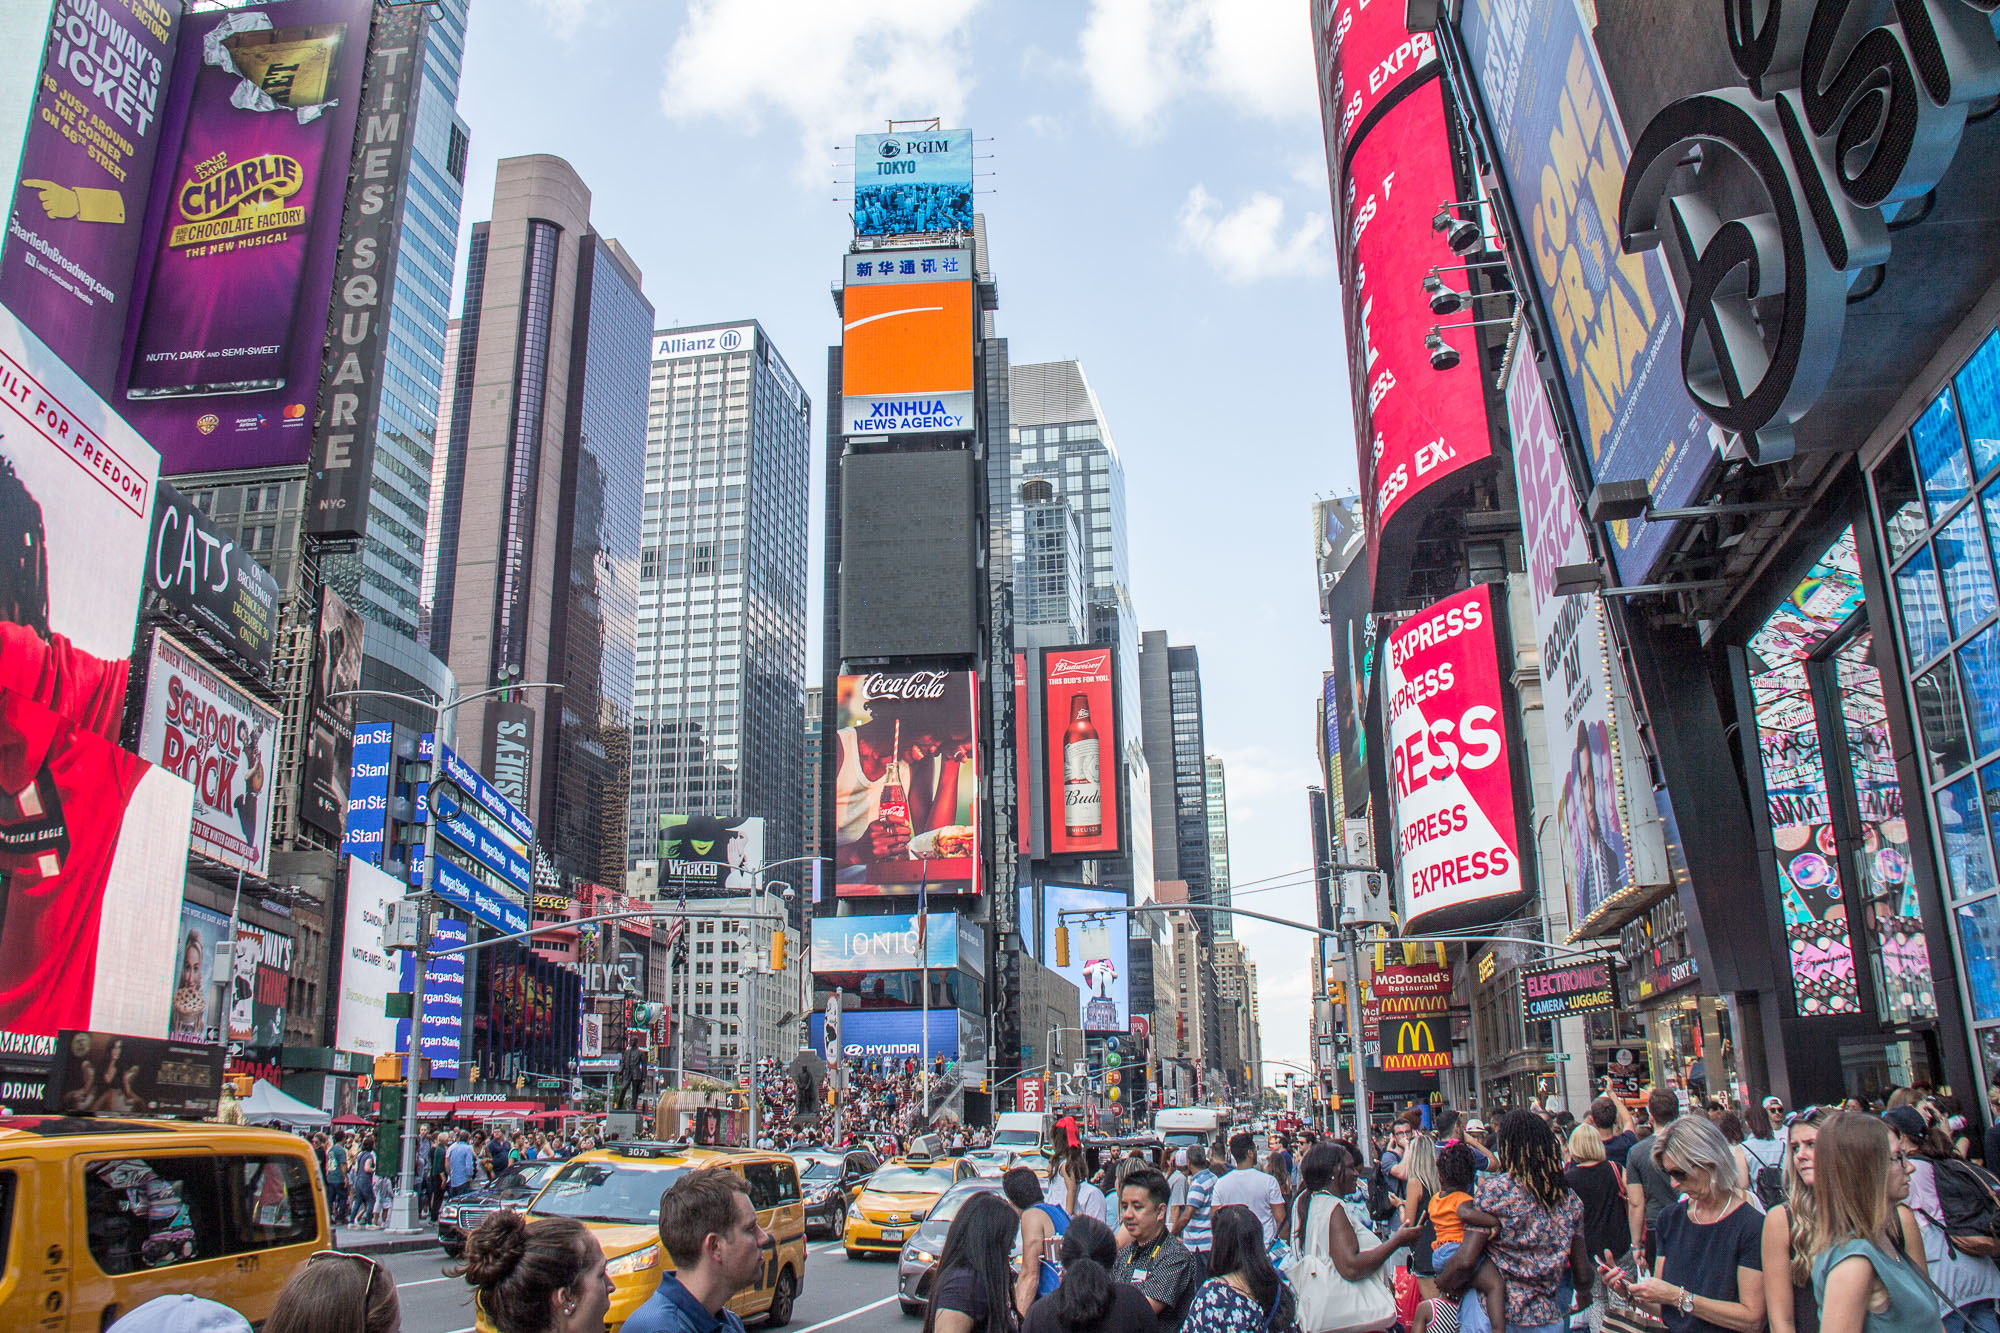 Towering Times Square Travel app